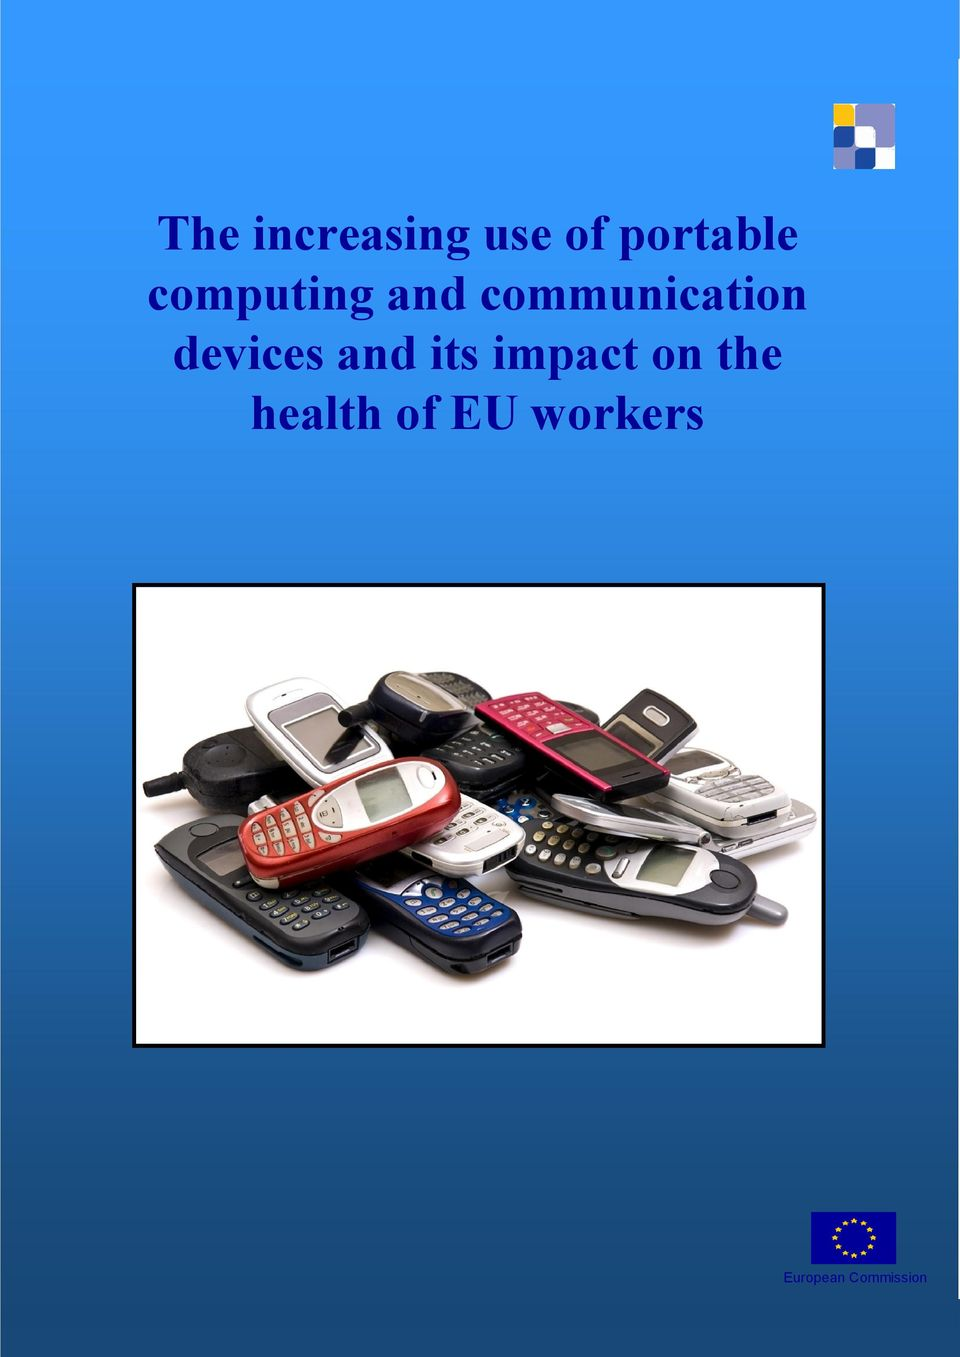 devices and its impact on the